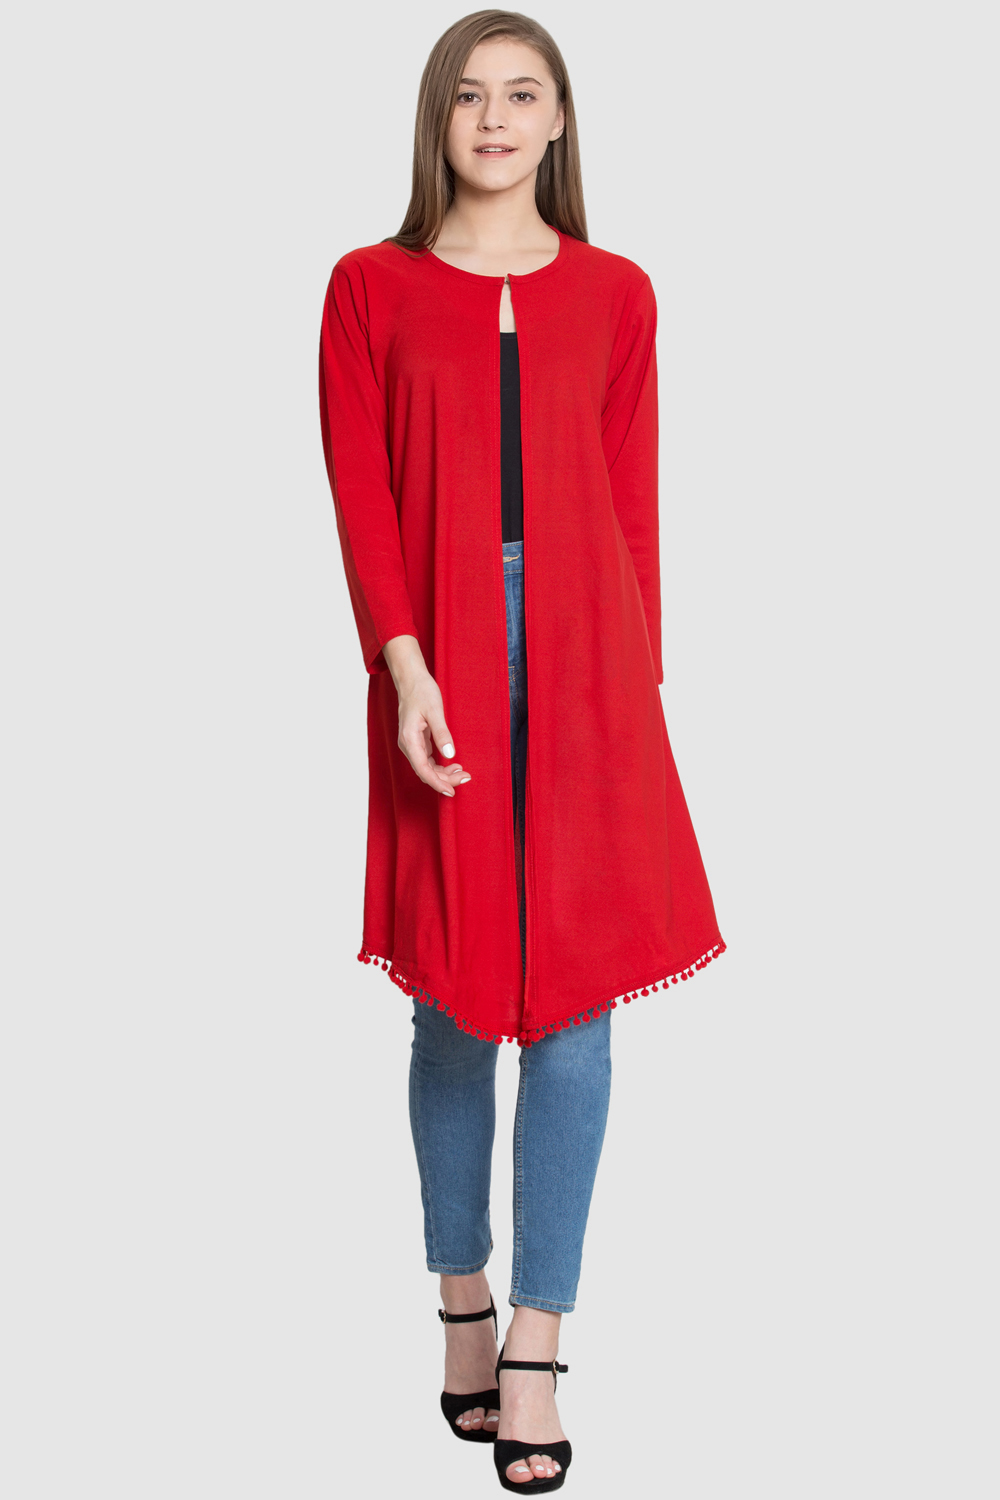 Style Gravity RED Polyester Long Shrug